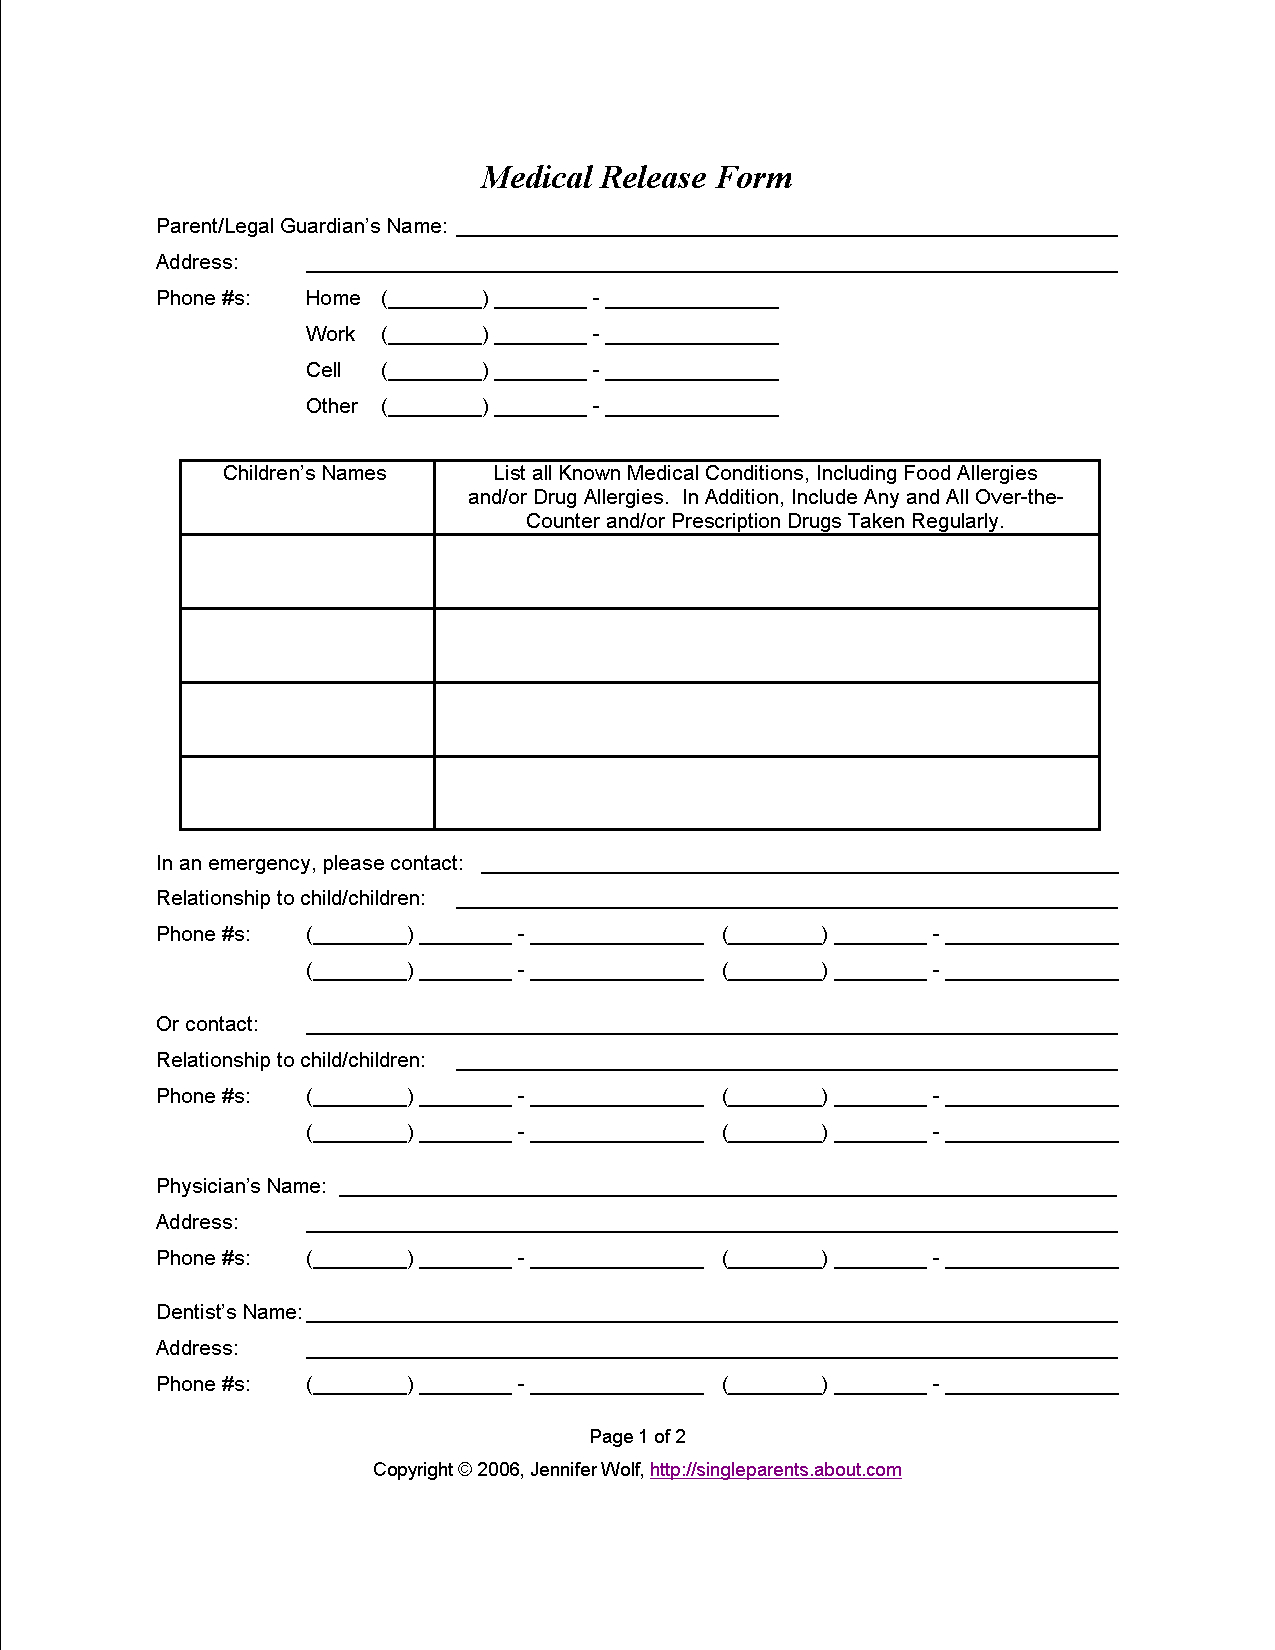 Do You Have A Medical Release Form For Your Kids? | Travel | Consent - Free Printable Caregiver Forms